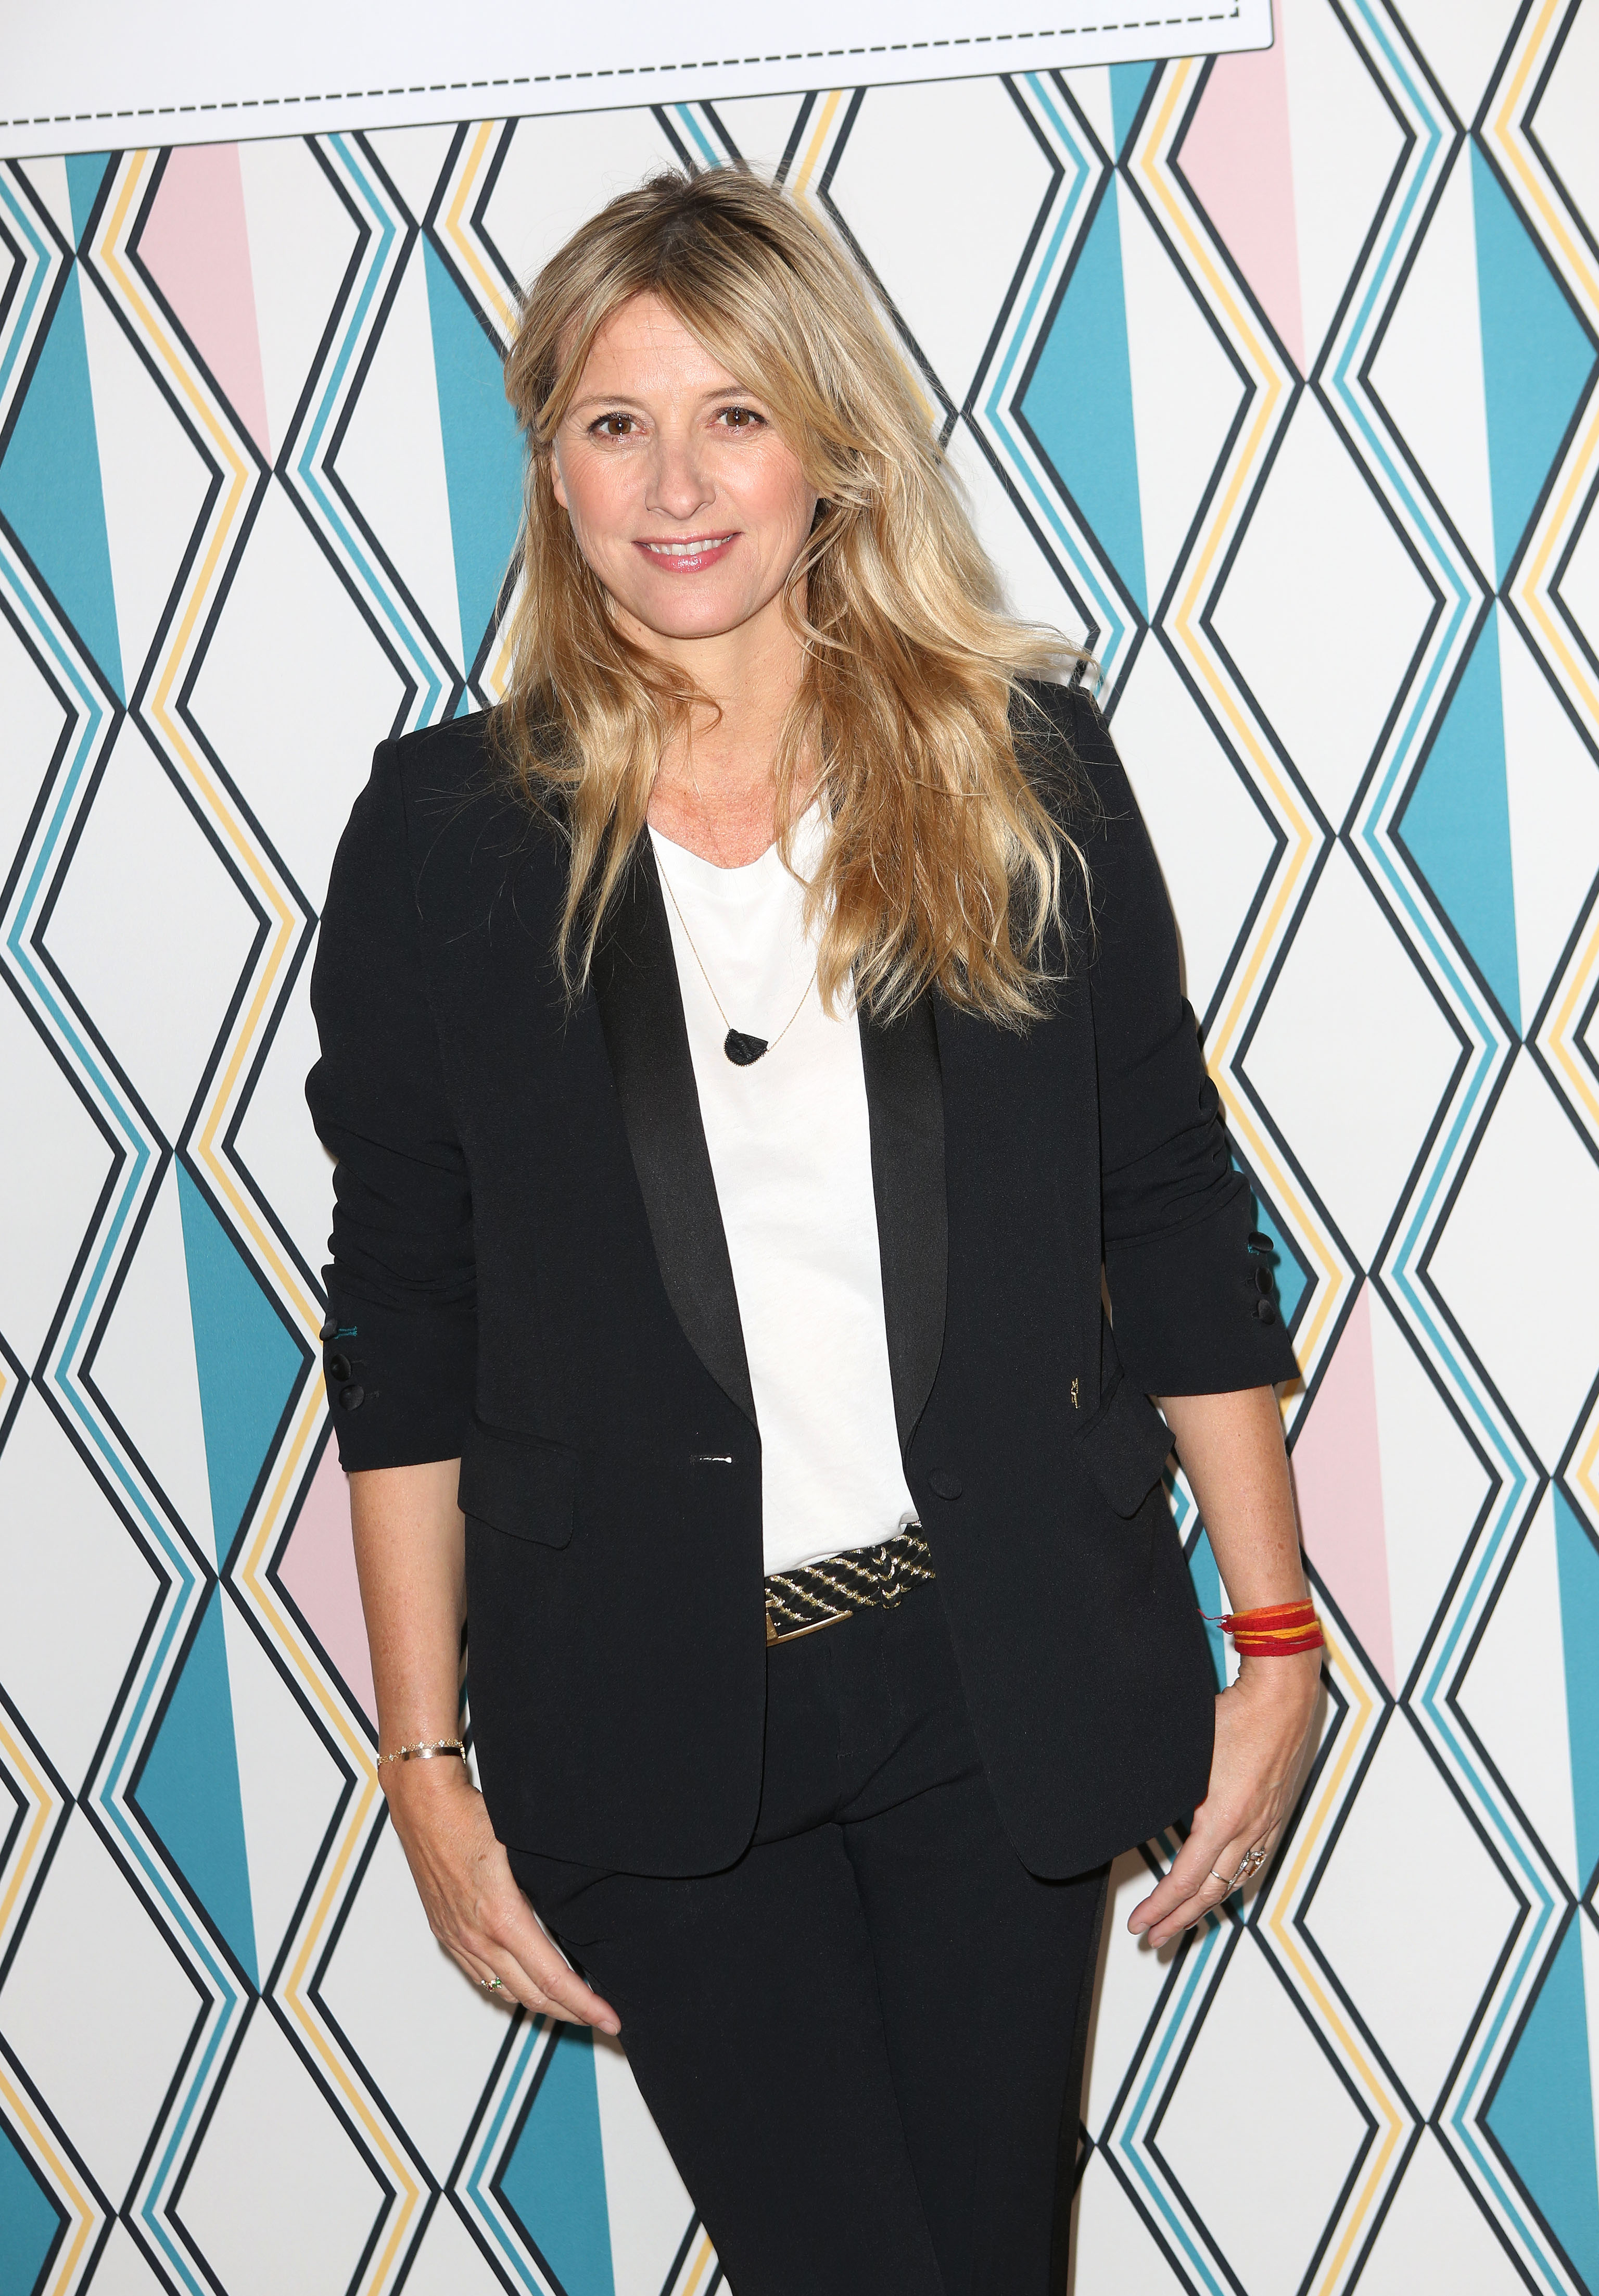 Sarah Lavoine at the launch of her collection for Lancel